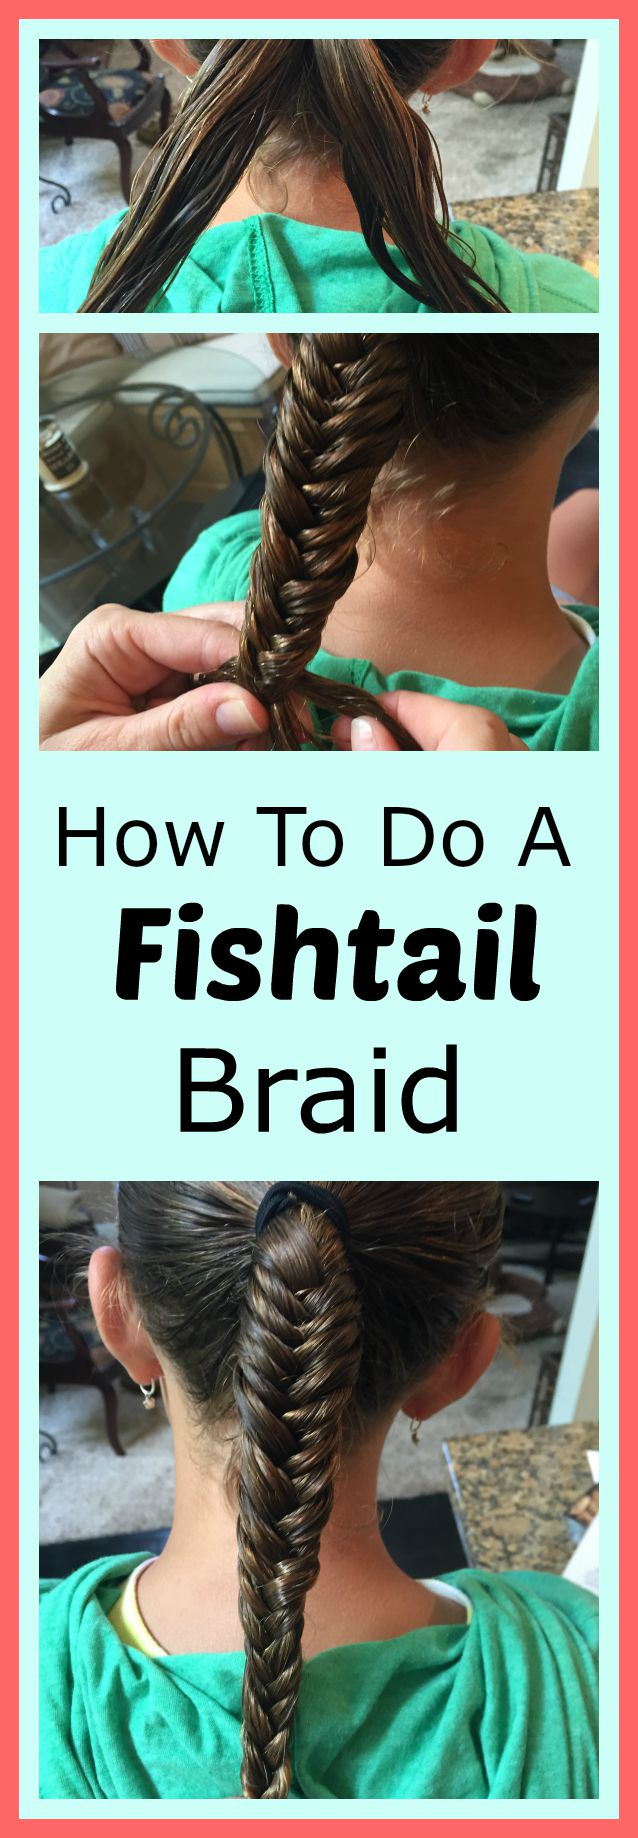 How to do a fishtail braid by www.mylifefromhome.com